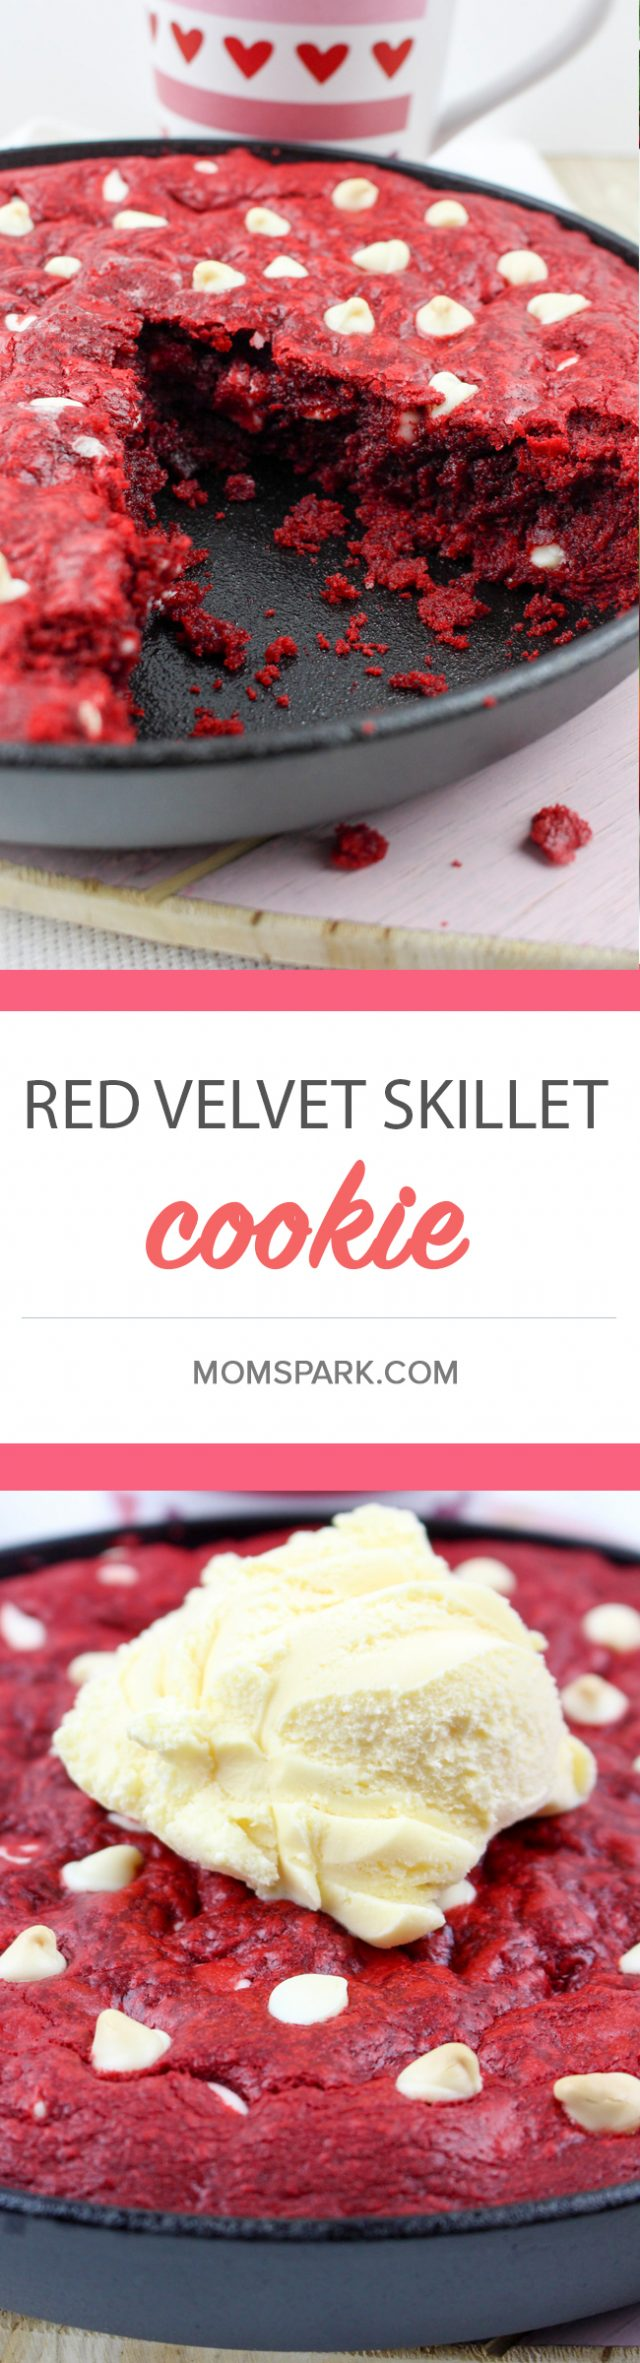 Red Velvet Skillet Dessert Cookie Recipe - What is it about red velvet that makes it so very delicious? All I know is that I want red velvet with every dessert for Valentine's Day. I'm also cool with it having another sweet counterpart, like white chocolate chips. Oh, and why not put all of that into a cookie skillet, too?